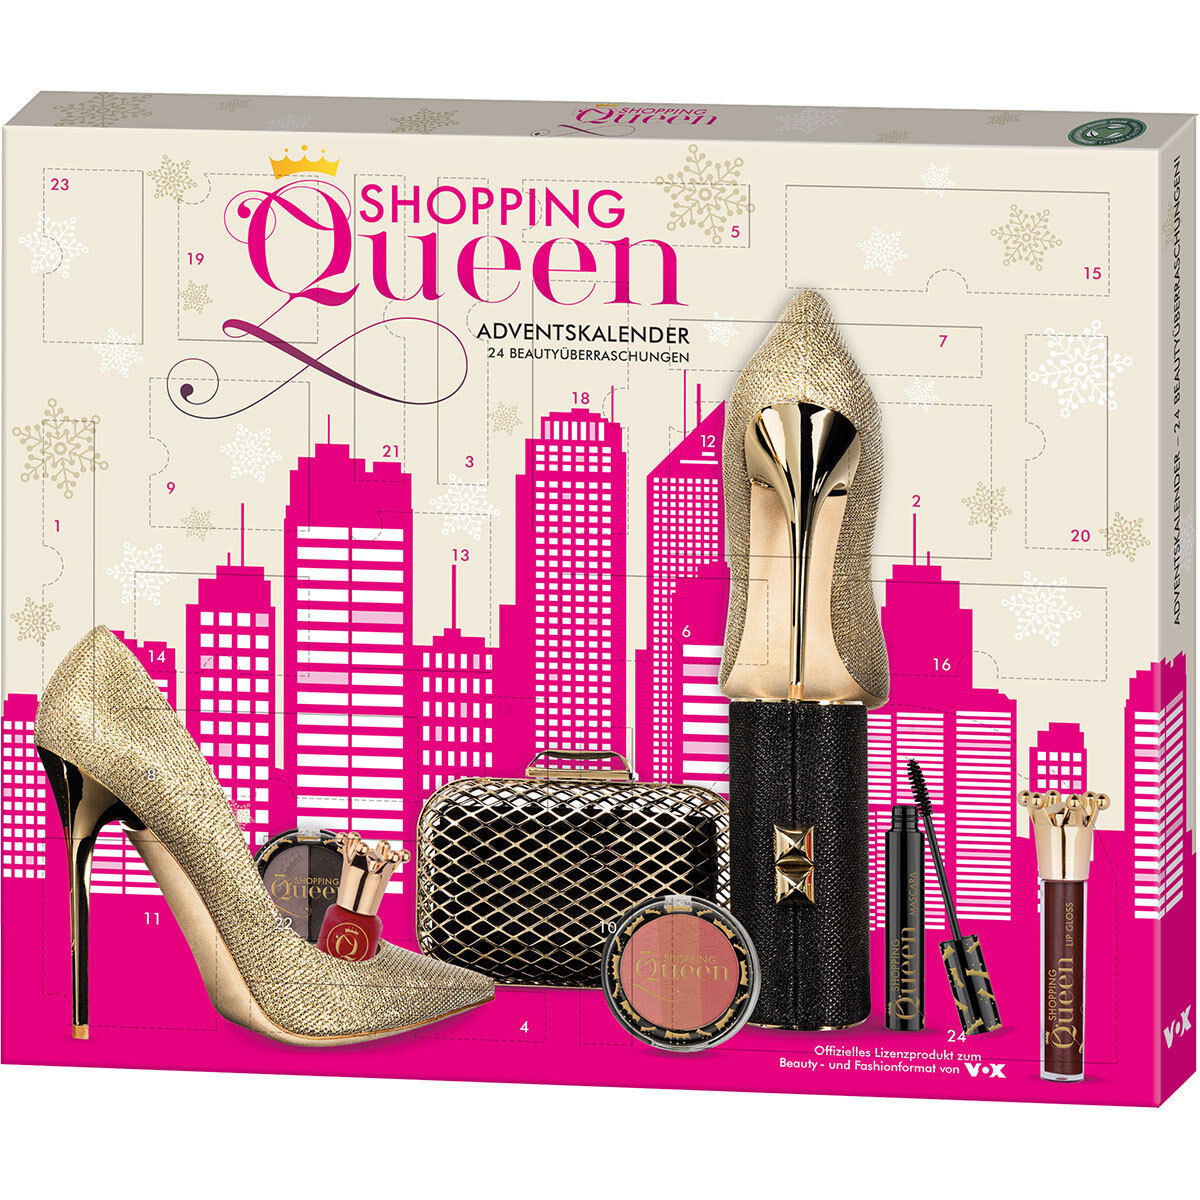 Karstadt Weihnachtskalender.Shopping Queen Beauty Adventskalender